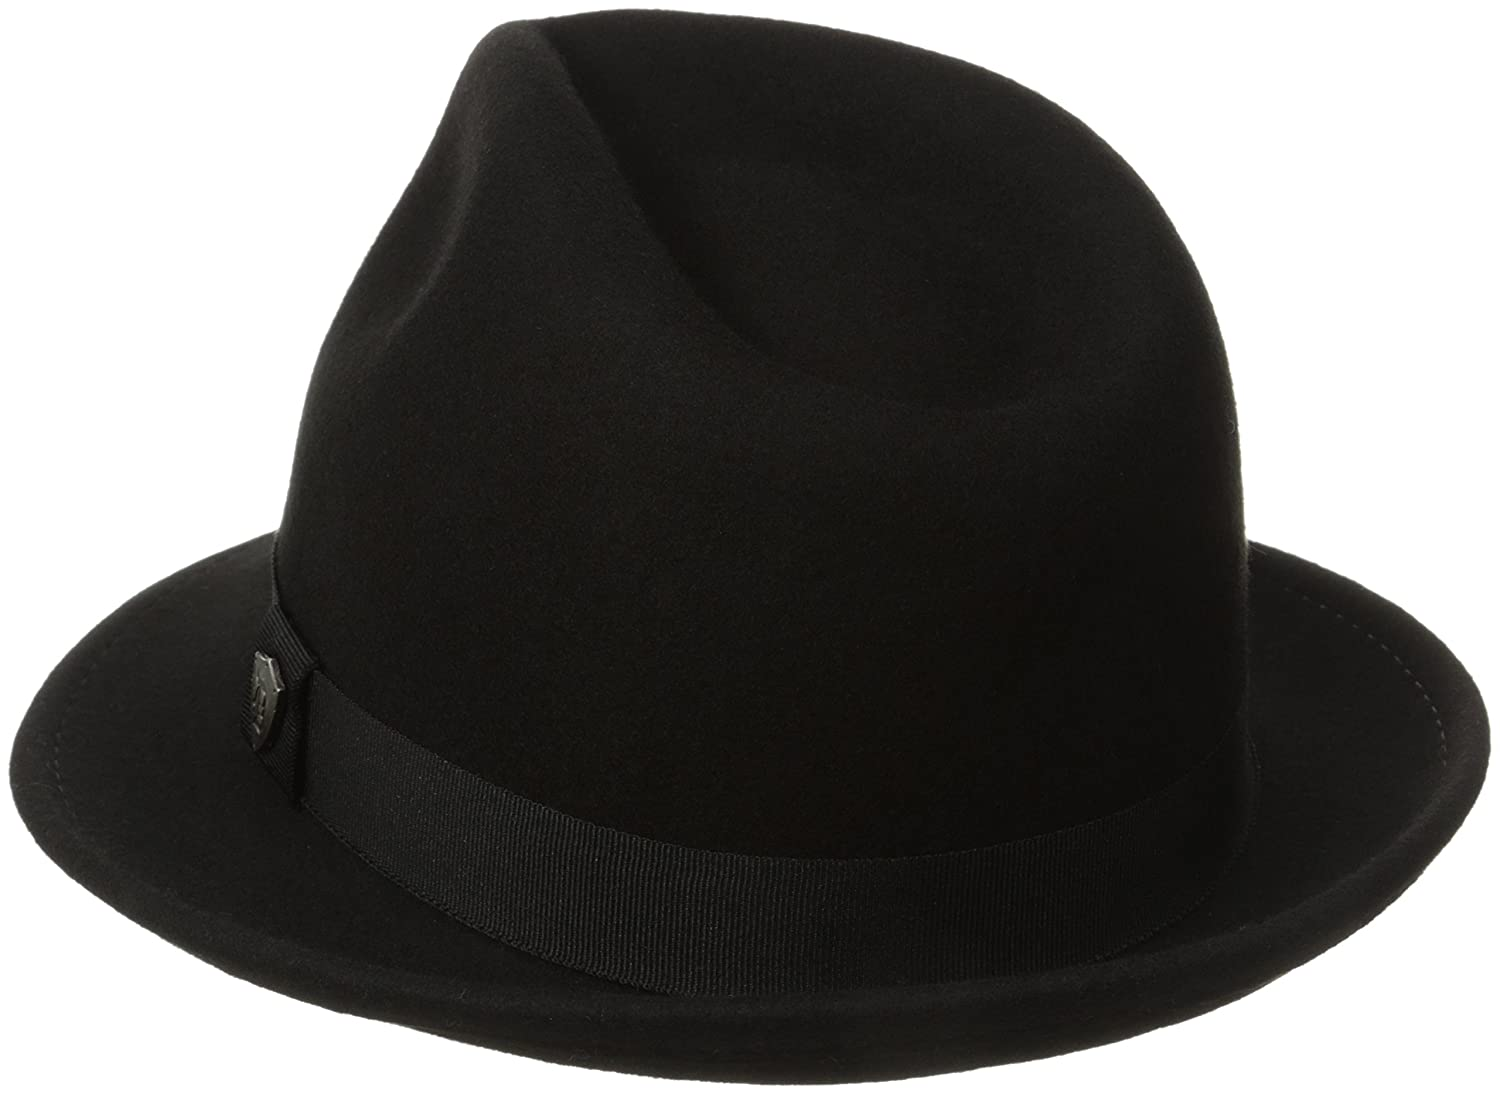 Gangster Costumes & Outfits | Women's and Men's Dorfman Wool Felt Hat $44.95 AT vintagedancer.com